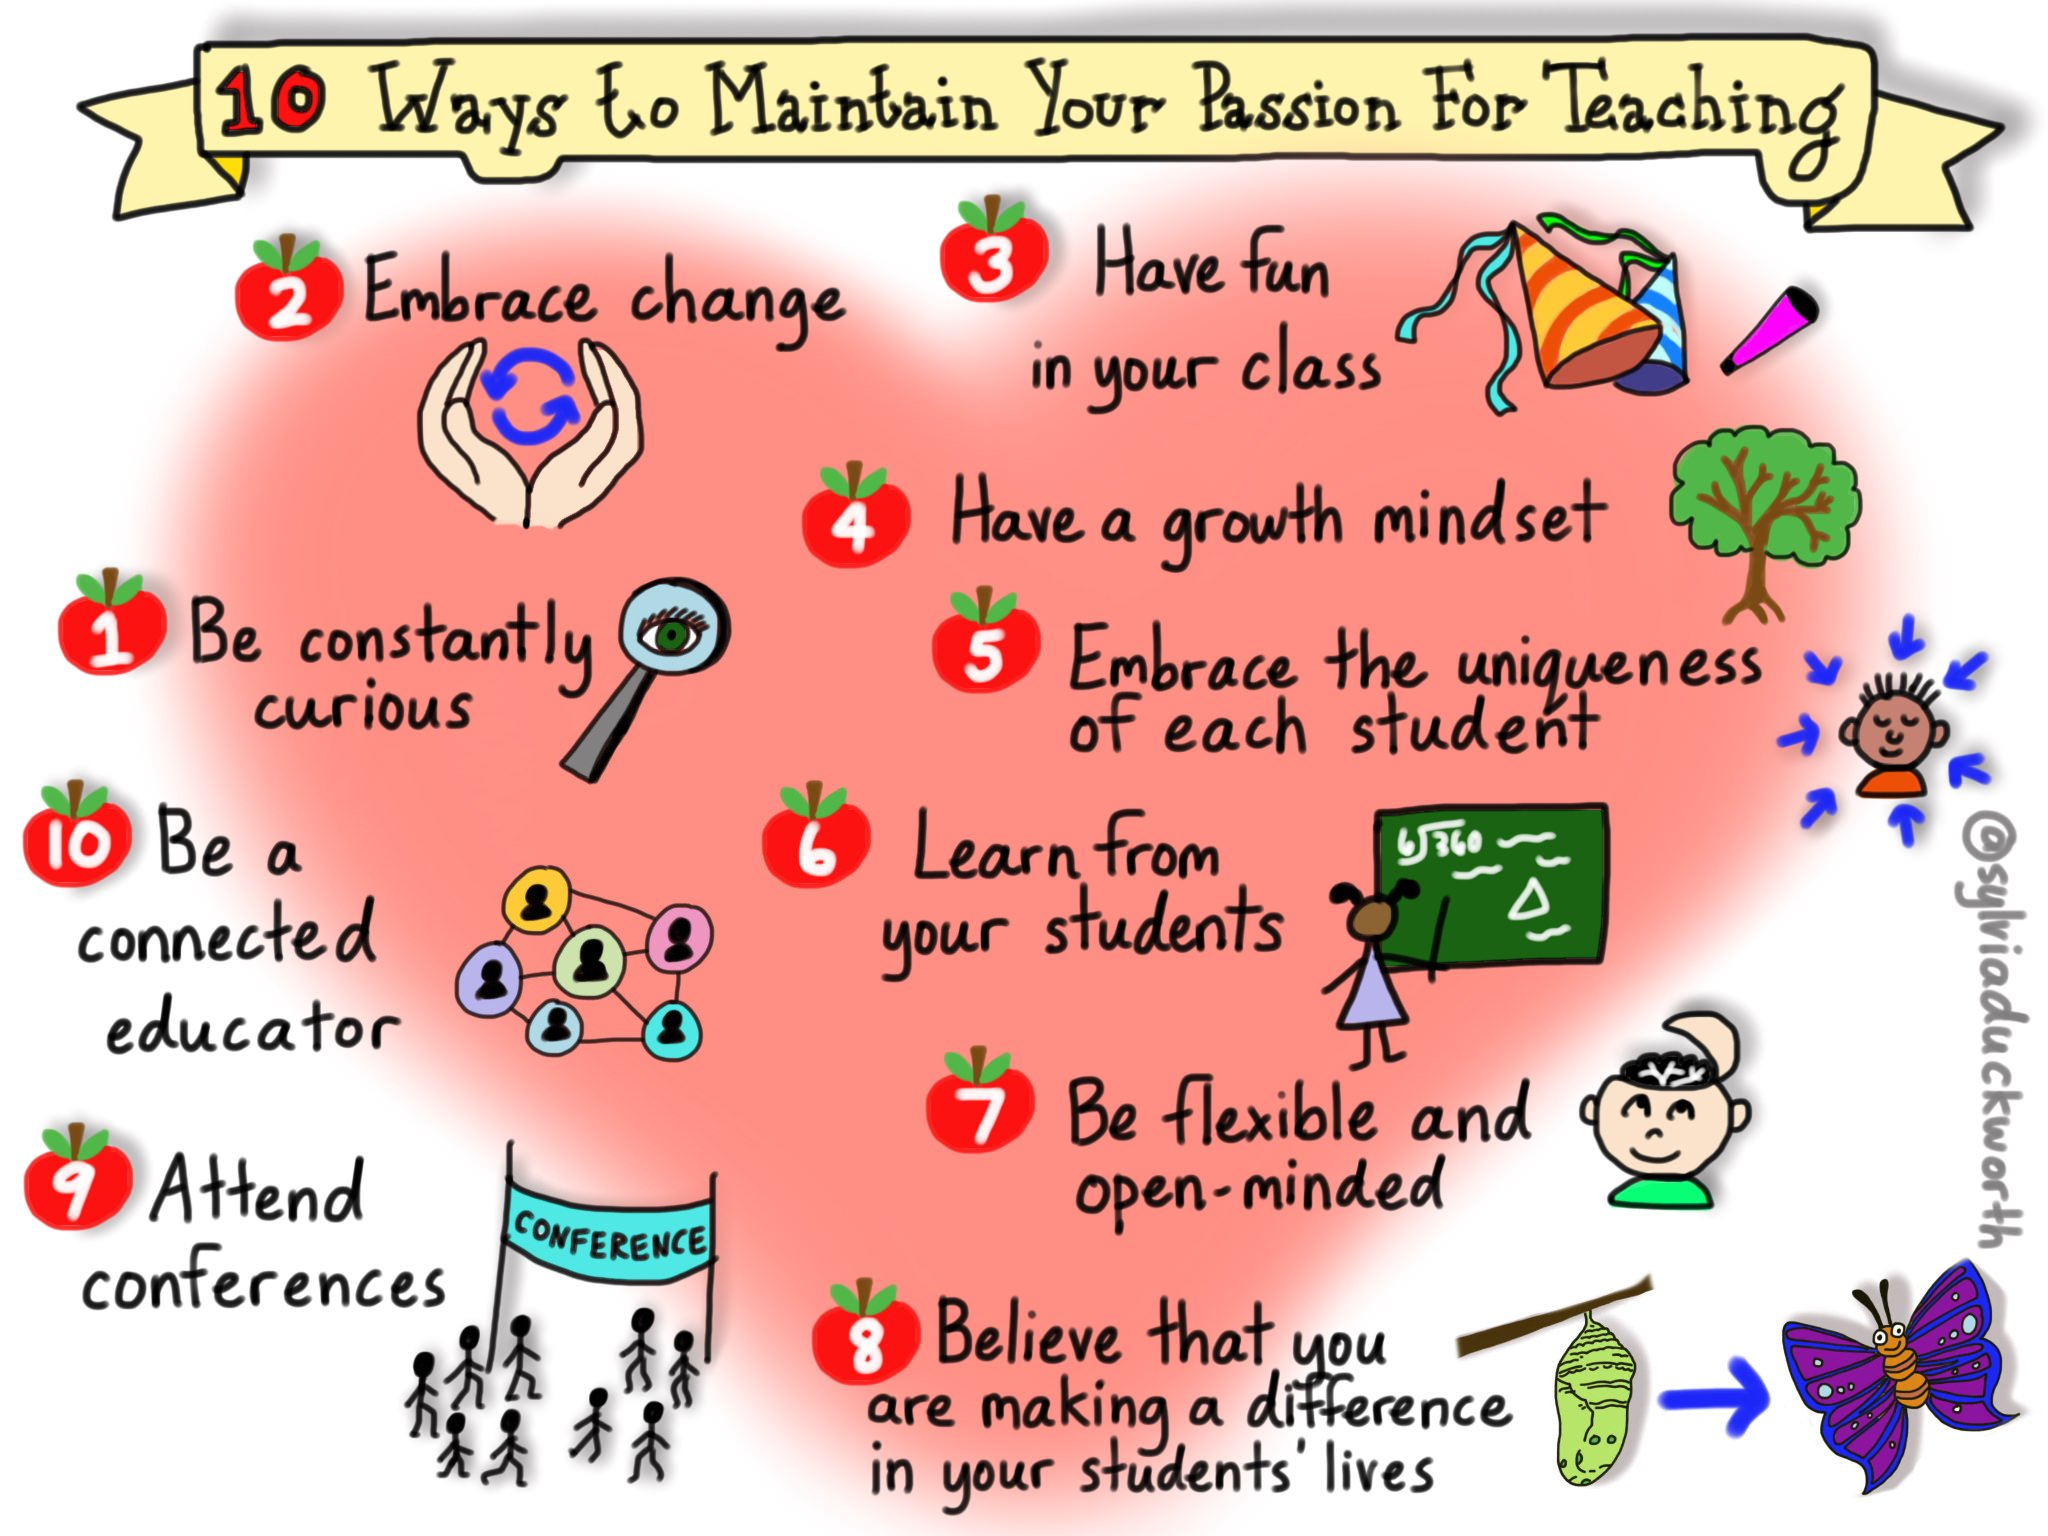 10 ways to maintain your passion for #teaching via @sylviaduckworth #edchat #education #motivation https://t.co/Vw3YPdzqoH